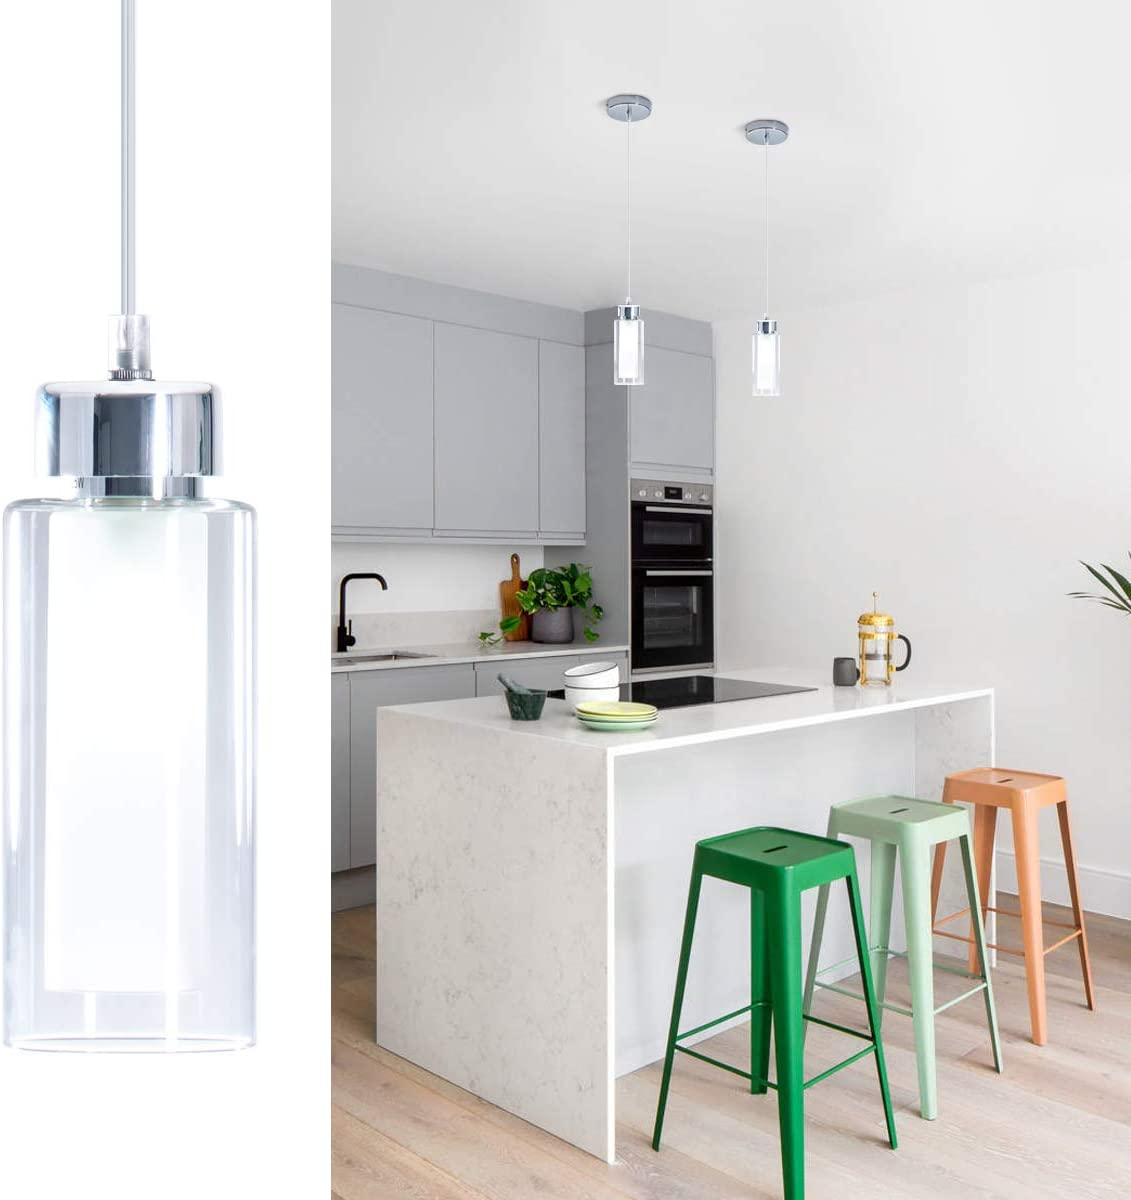 Bewamf Modern Pendant Lighting Contemporary 1 Light Mini Pendant Lights Dual Glass with Cylinder Shape in Chrome Adjustable Lamp for Kitchen Island Bar Living Dining Room Bedroom